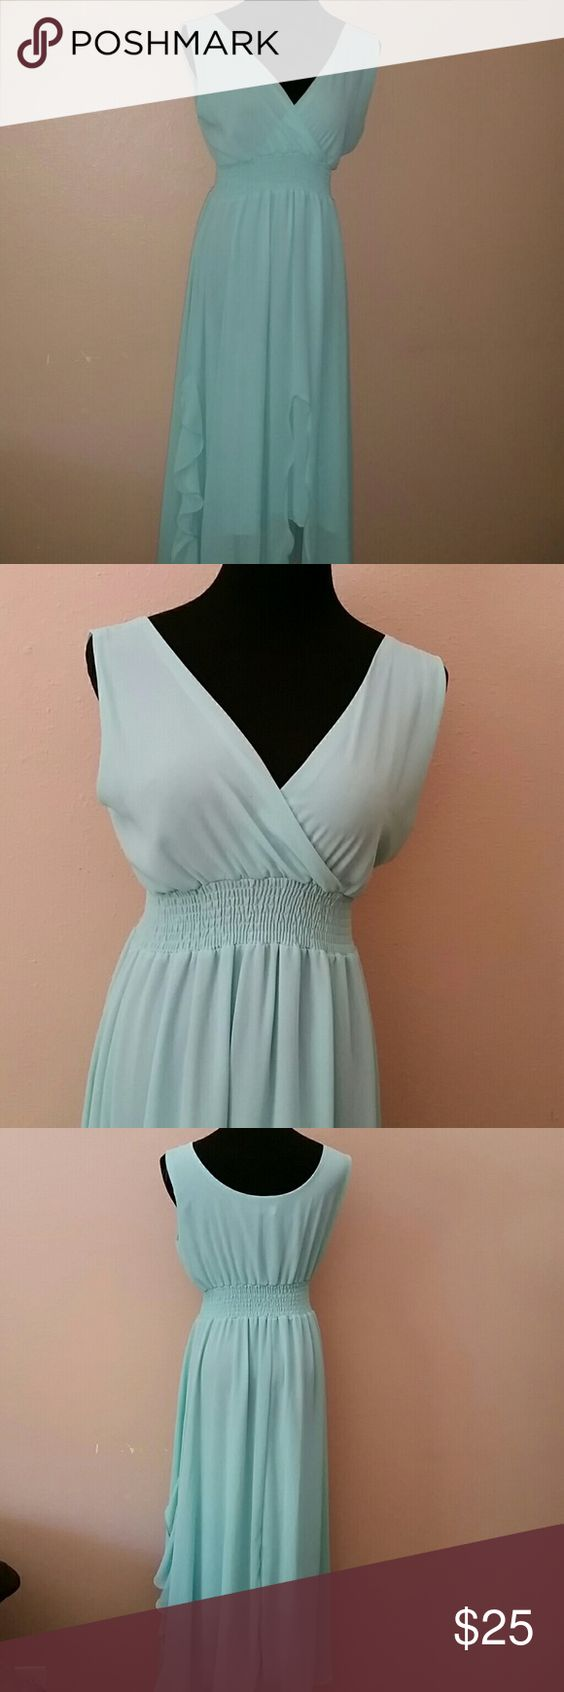 Light blue chiffon dress Light blue chiffon dress size medium Melina Fashion Dresses Maxi